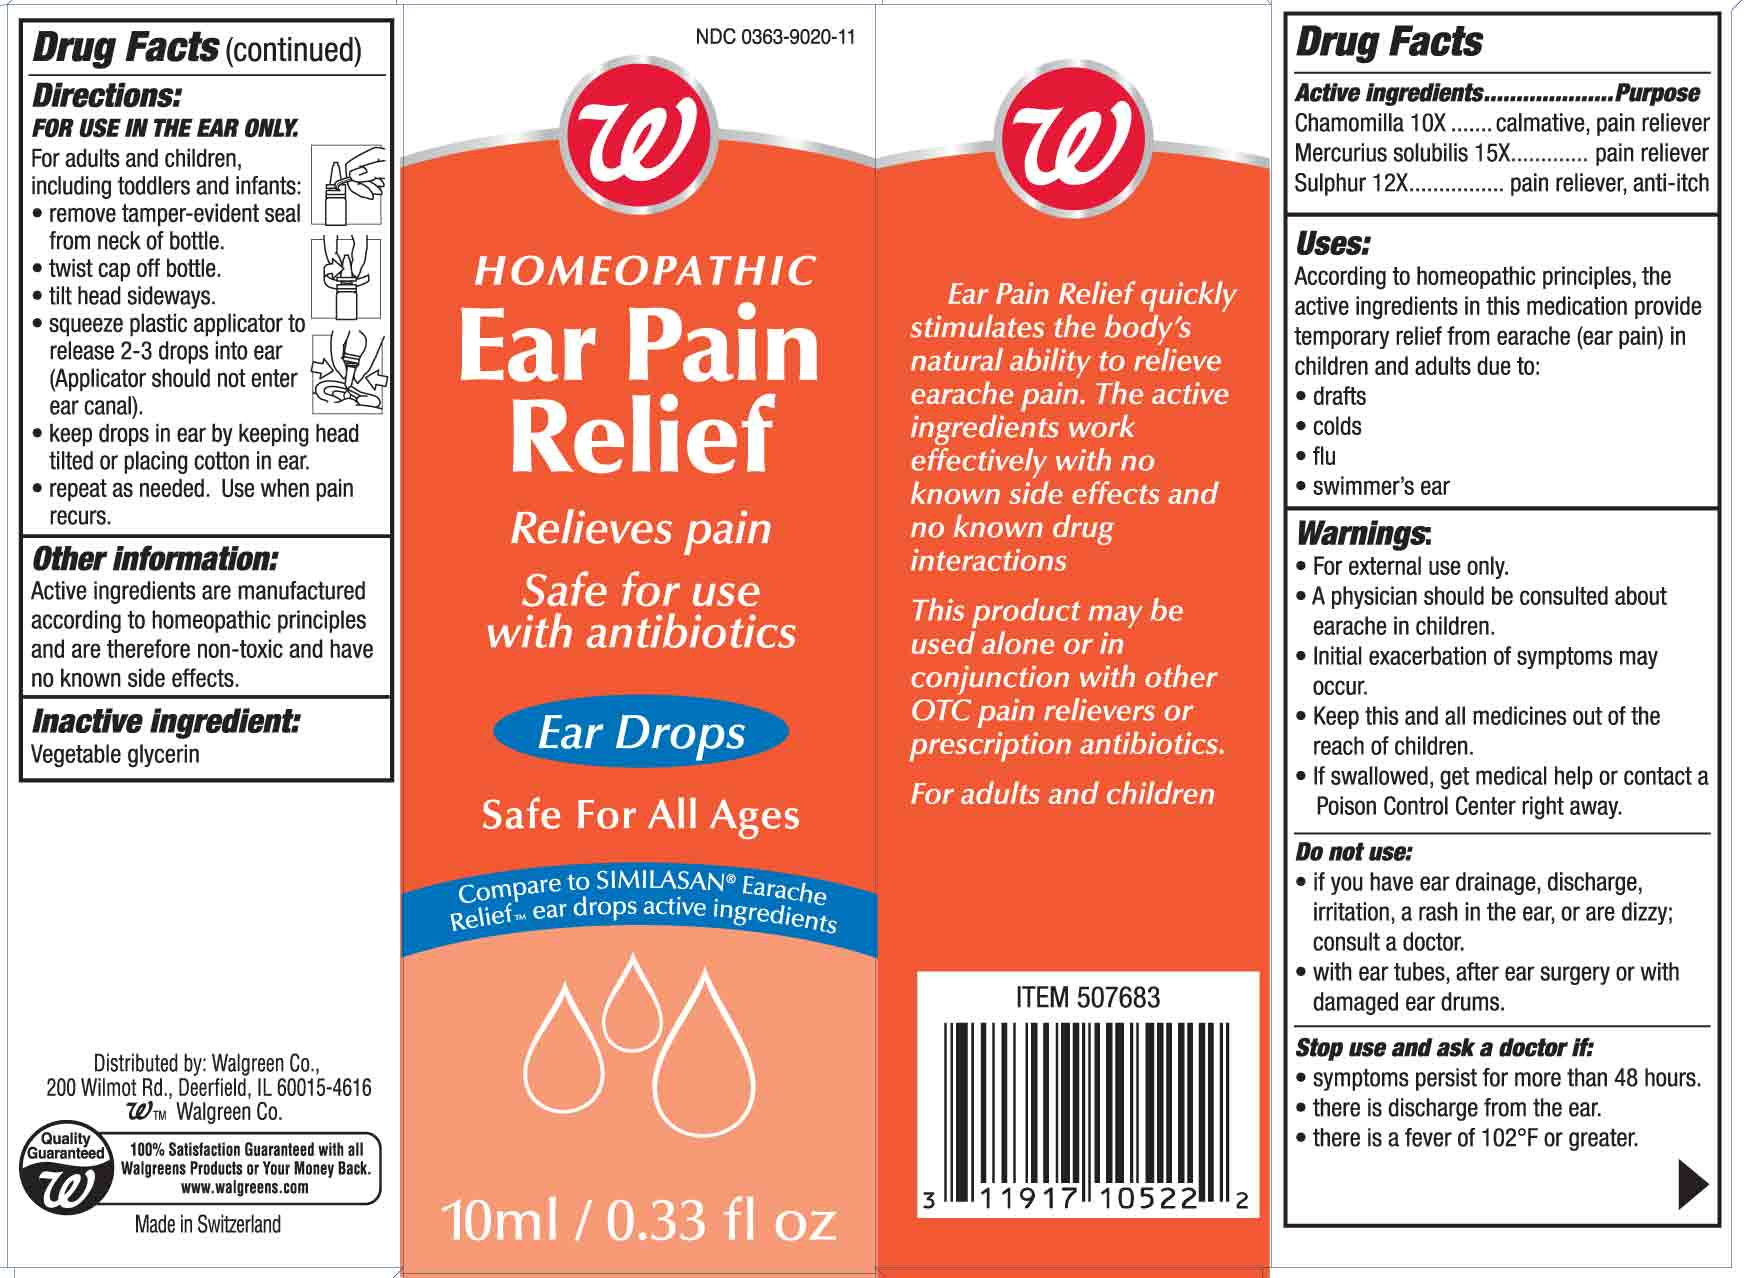 Homeopathic Ear Pain Relief (Chamomilla And Mercurius Solubilis And Sulphur) Solution [Walgreen Co]